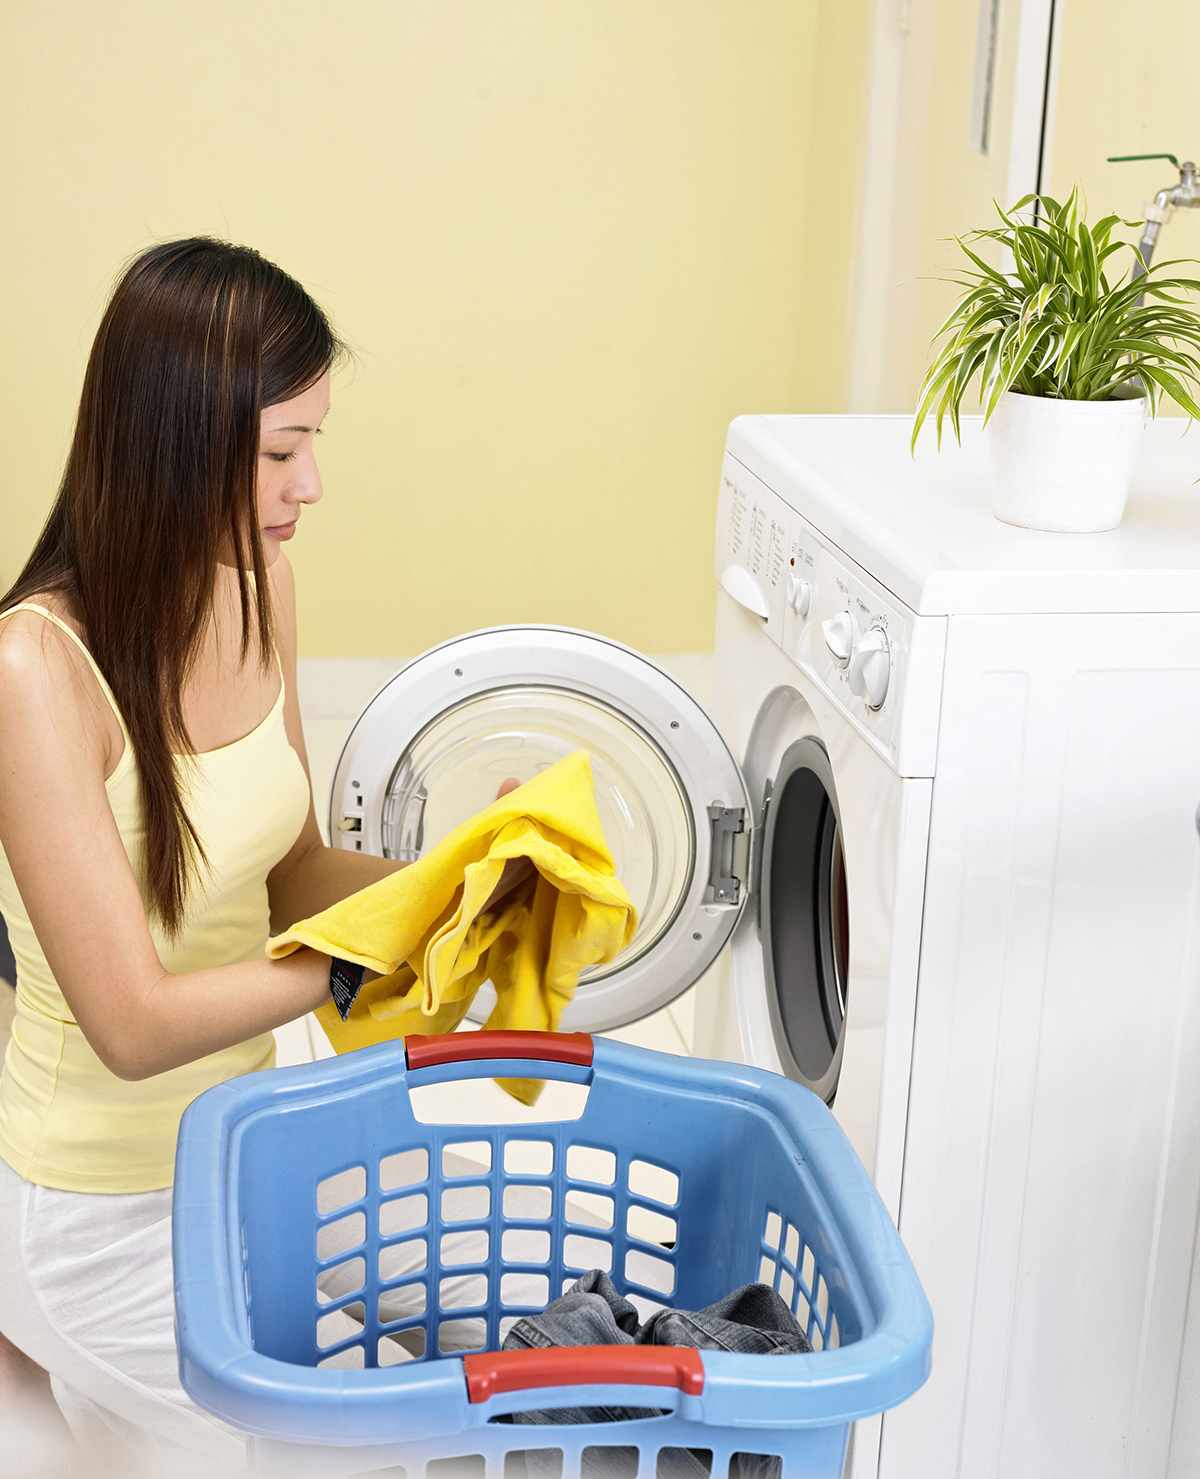 BioHomeCares -3 reasons why fabric softeners are not as good as you think